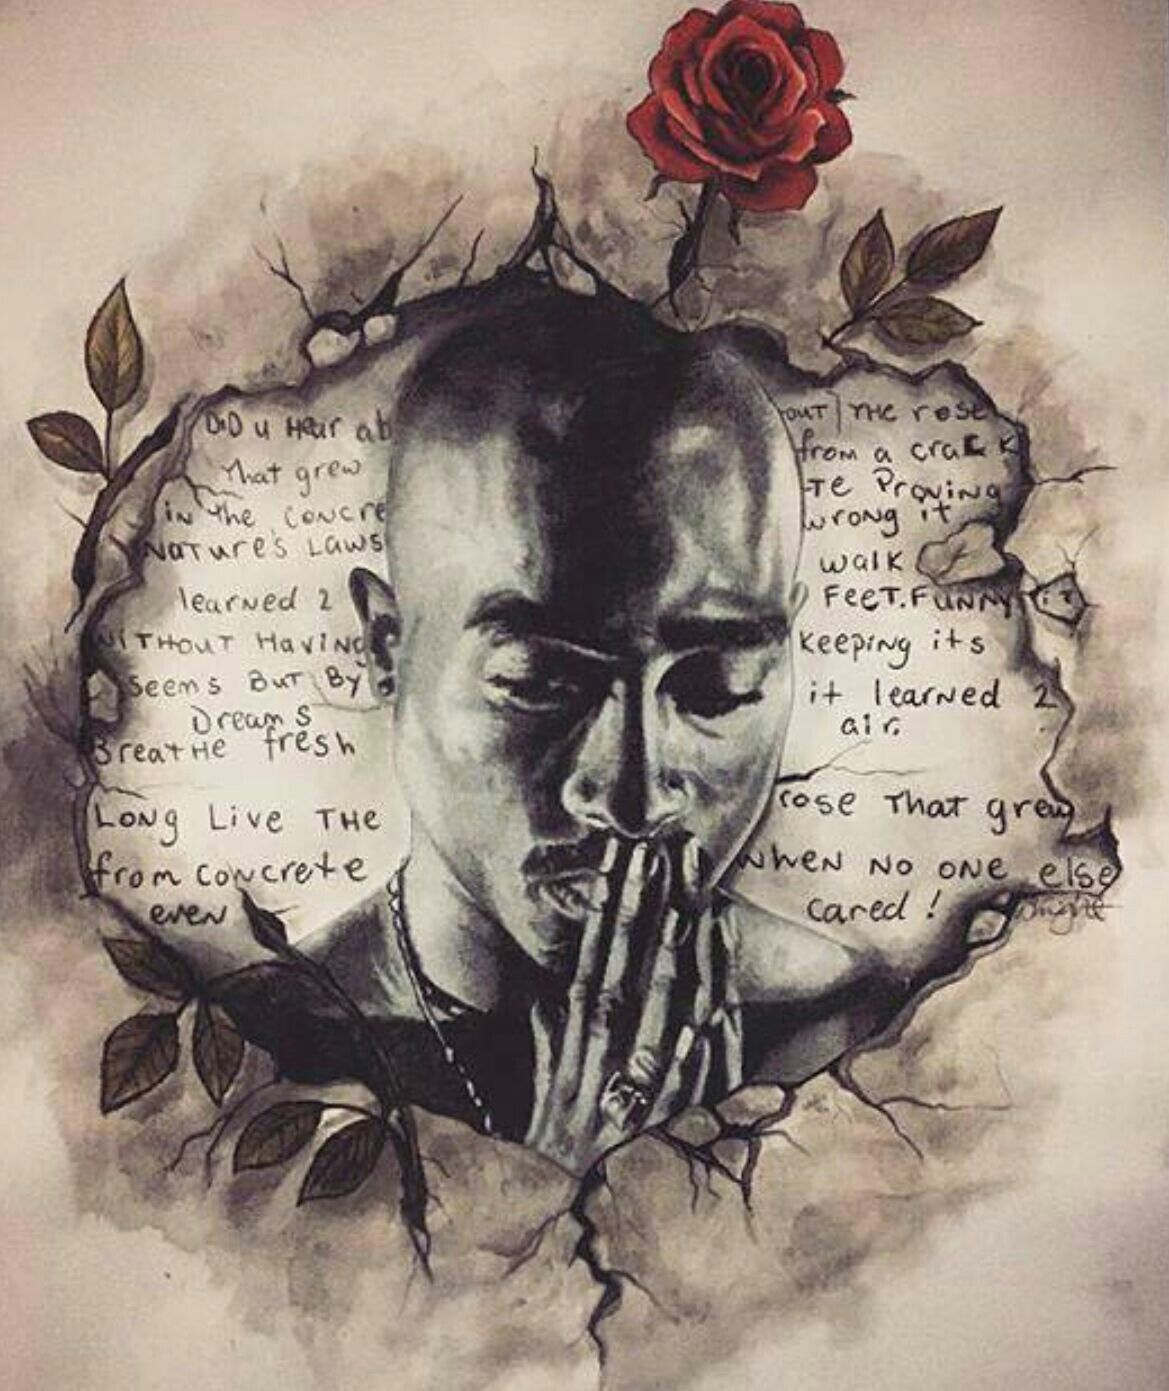 The Rose That Grew From The Concrete With Images Tupac Art